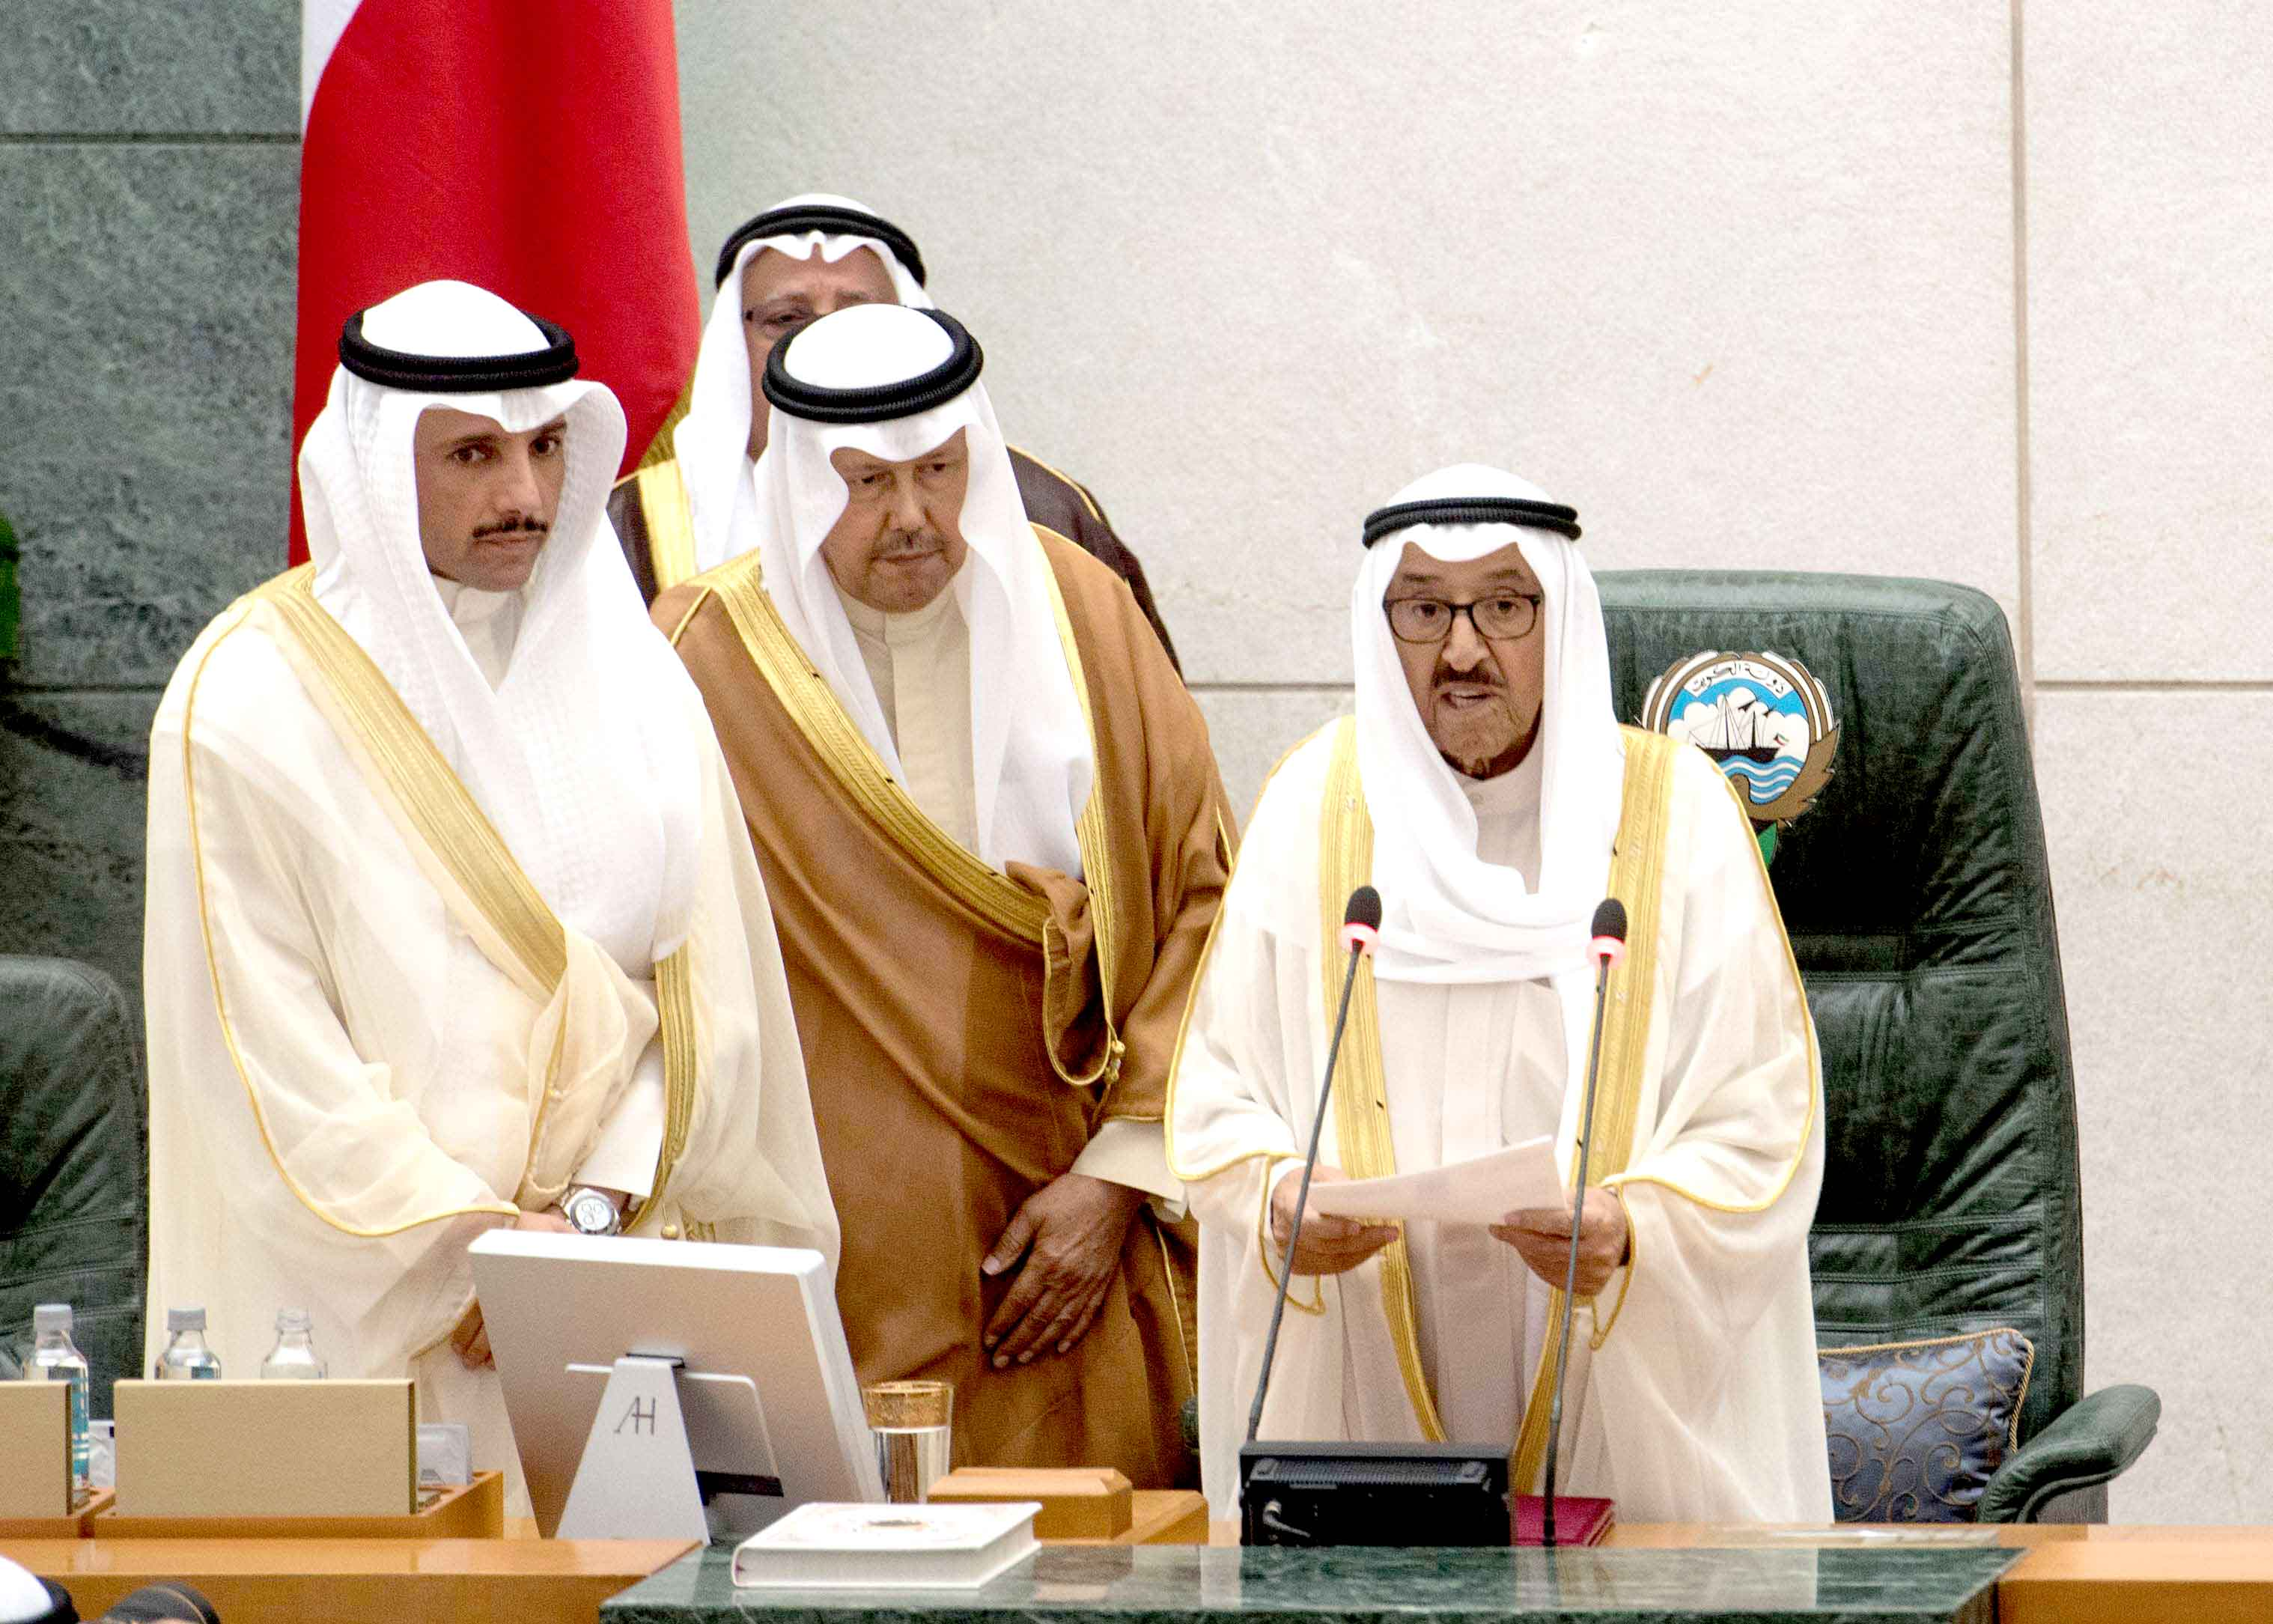 A voice of reason. Kuwaiti Emir Sheikh Sabah Ahmad al-Jaber al-Sabah (R) reads his opening speech at the start of the fourth ordinary session of the 15th Legislative Parliament in Kuwait City, October 29. (Reuters)